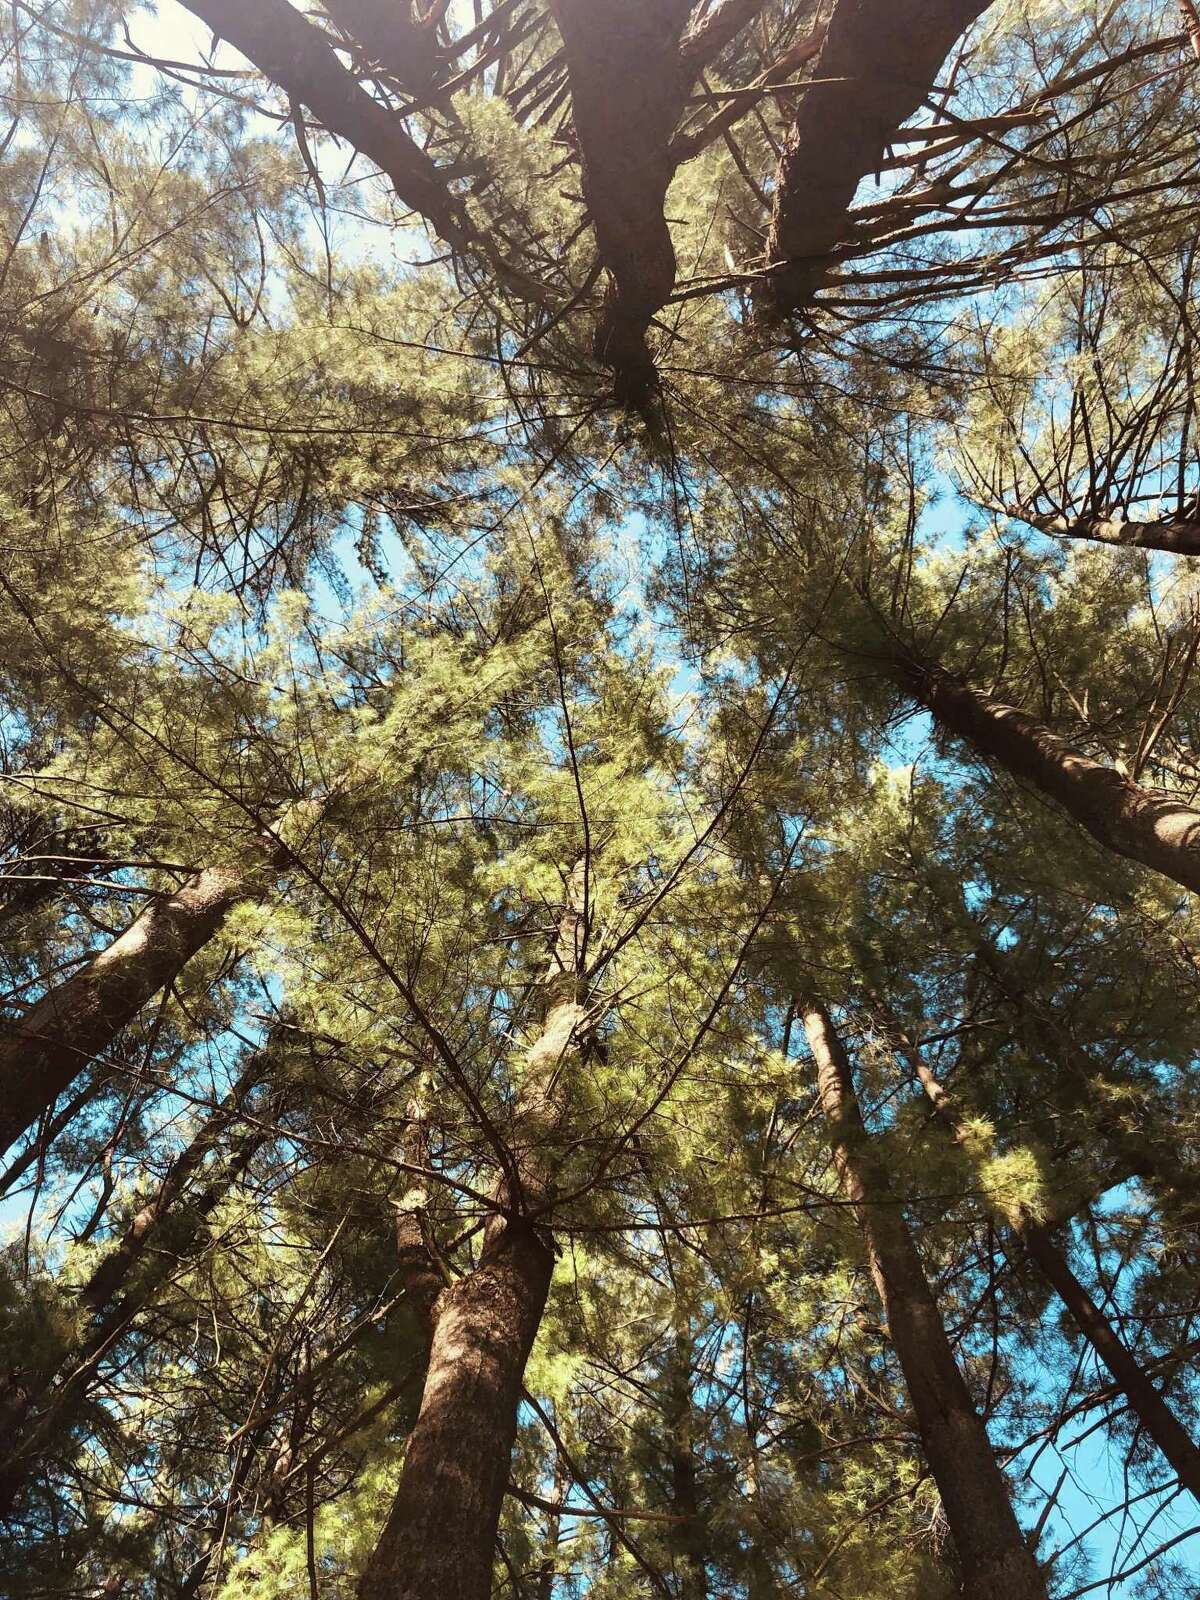 On any given day, visitors to Harrybrooke Park in New Milford can find shade beneath a variety of trees. And the view while seeking refuge from the sun can be, if looking up, stunning. A change in perspective can make all the difference.